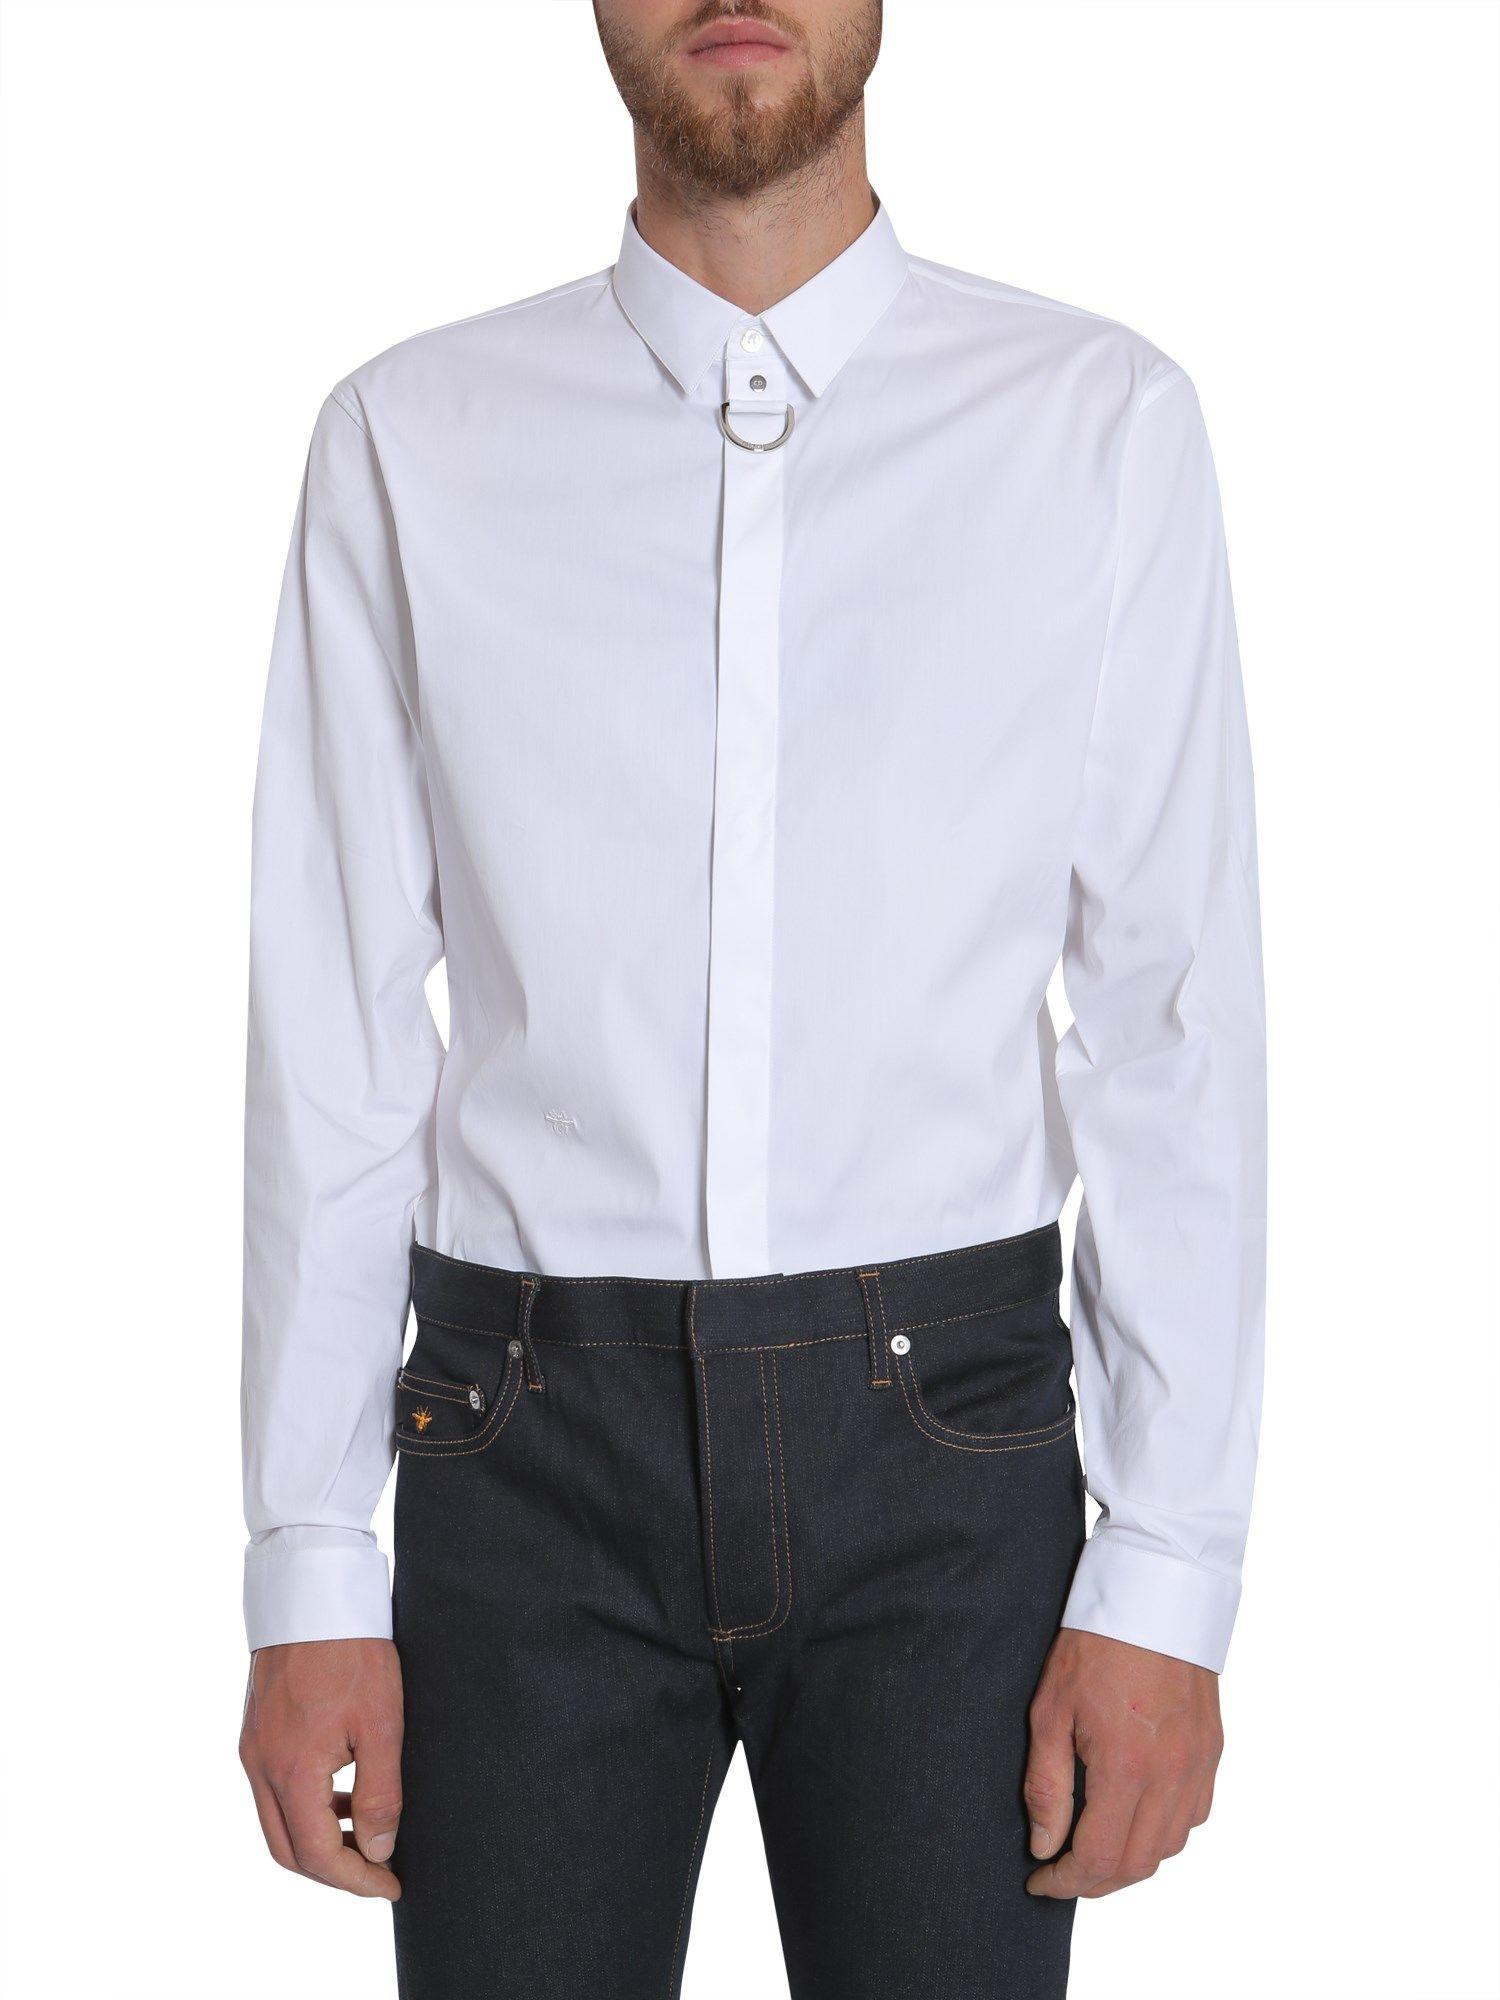 Dior Homme Shirt With Metal Buckle In Bianco